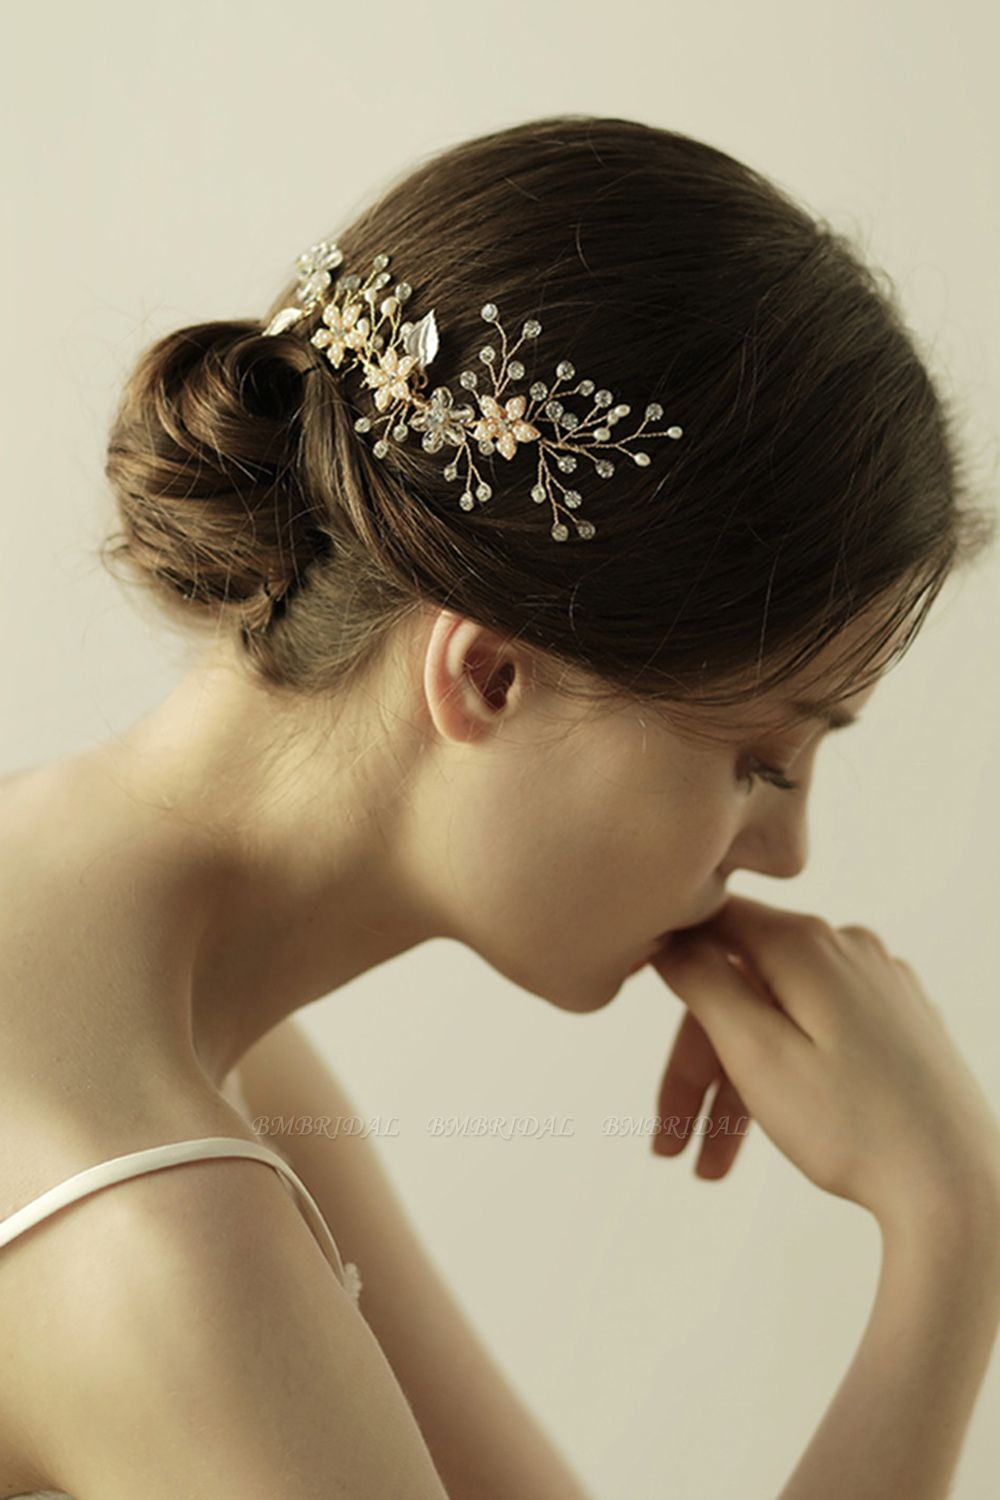 Beautiful Alloy Rhinestone Wedding Combs-Barrettes Headpiece with Imitation Pearls